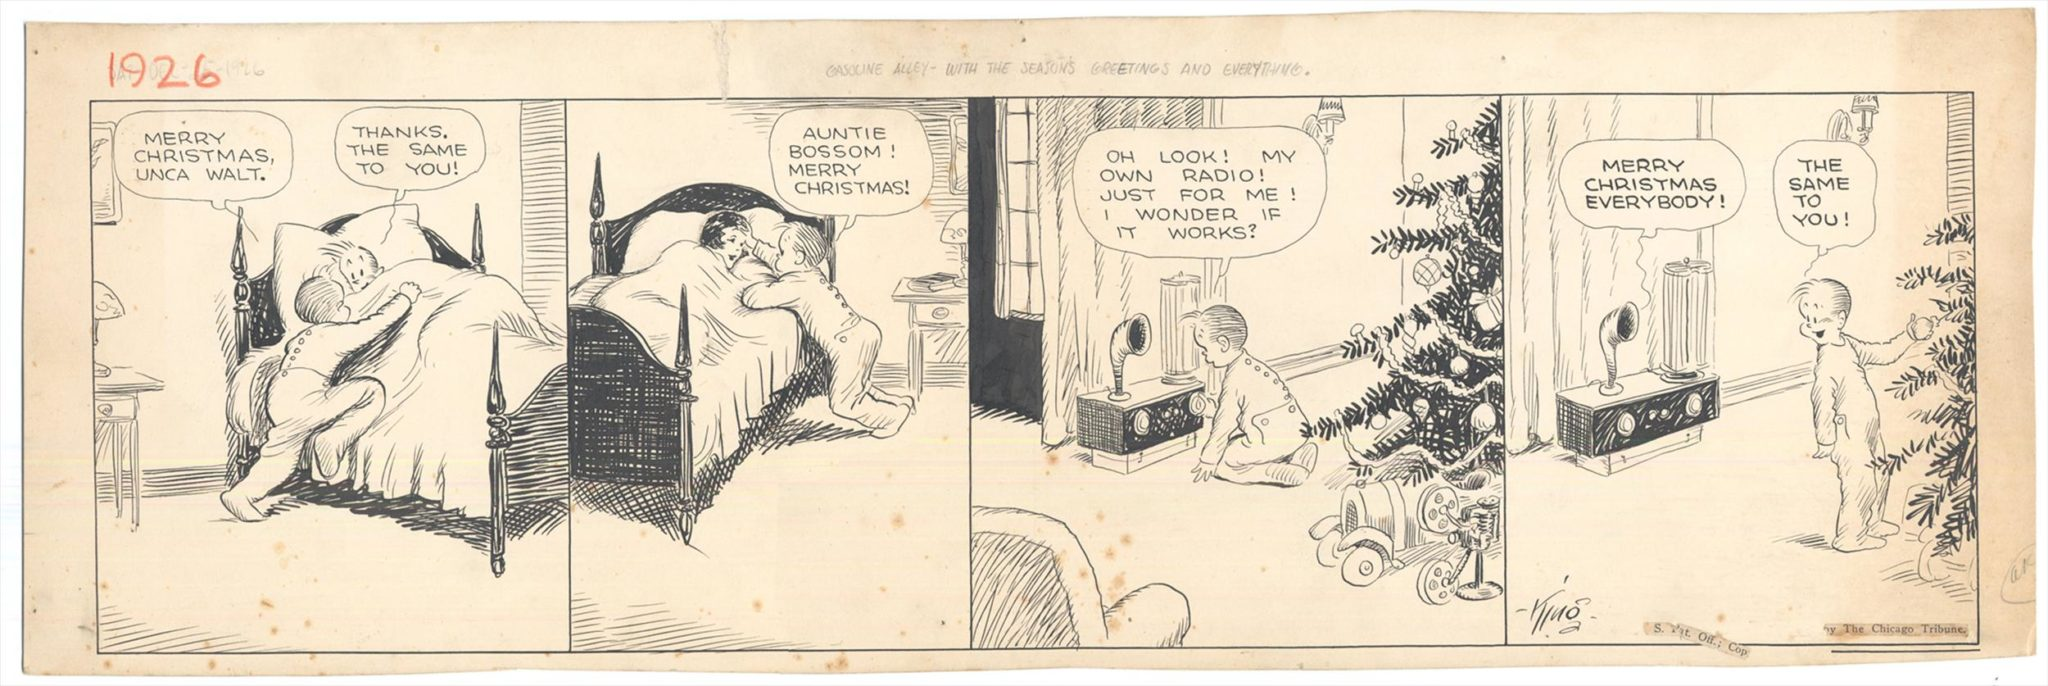 Gasoline Alley 12-25-1926 by Frank King